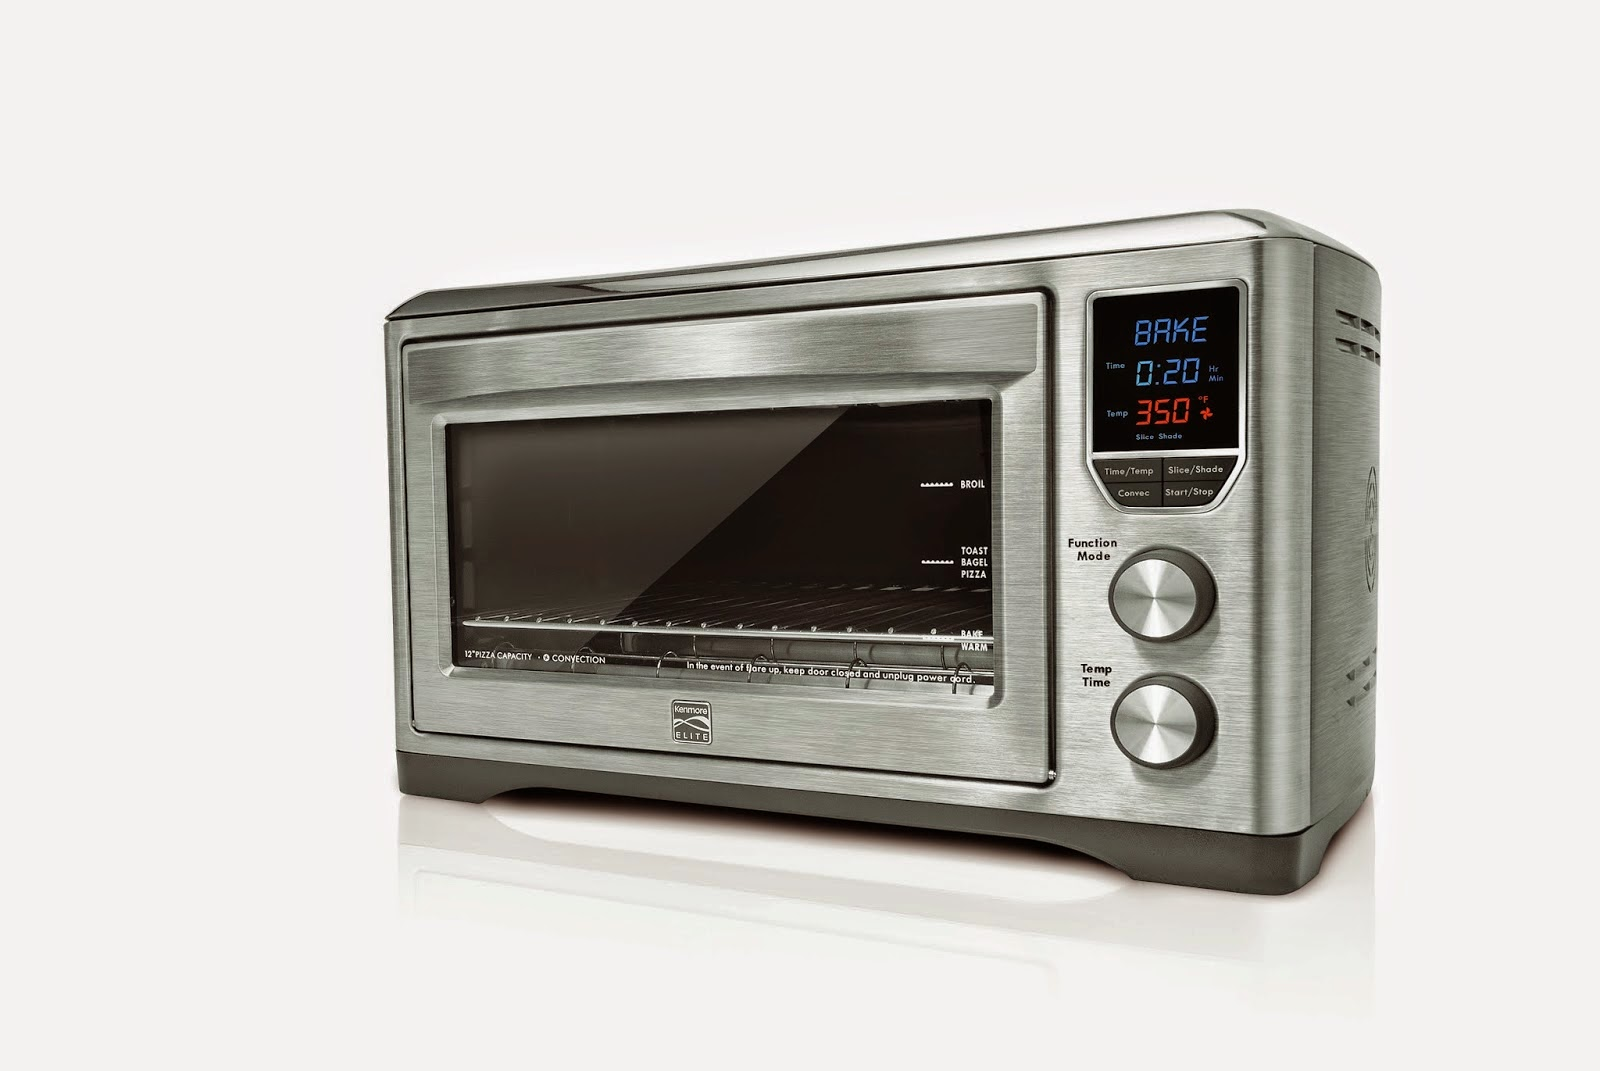 Kenmore Elite Countertop Convection Oven : Kenmore Elite Digital Countertop Convection Oven